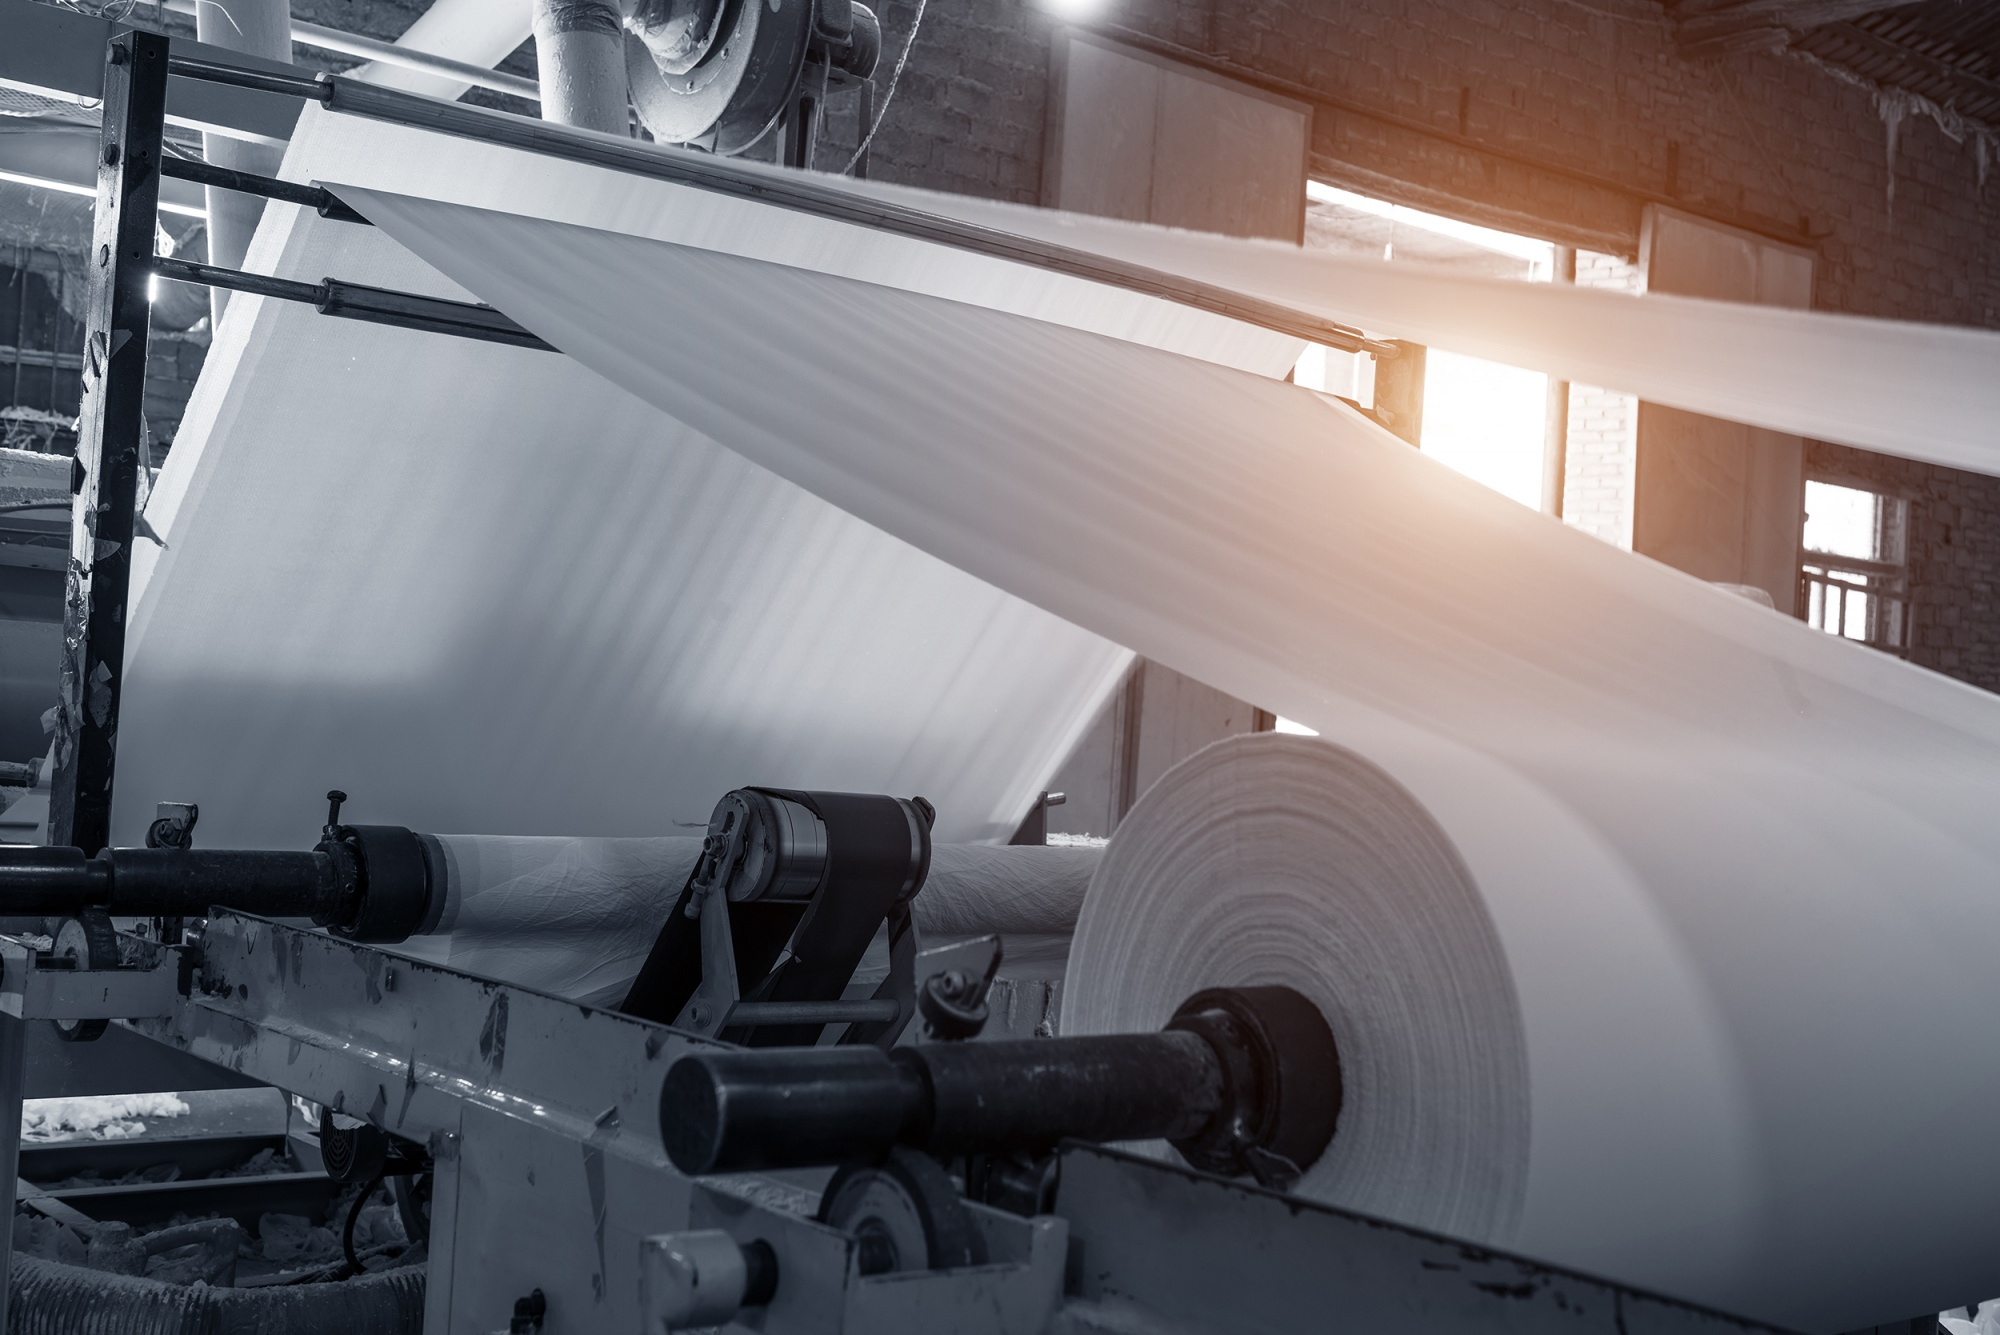 A piece of paper rolling equipment rolling up a spool of white paper